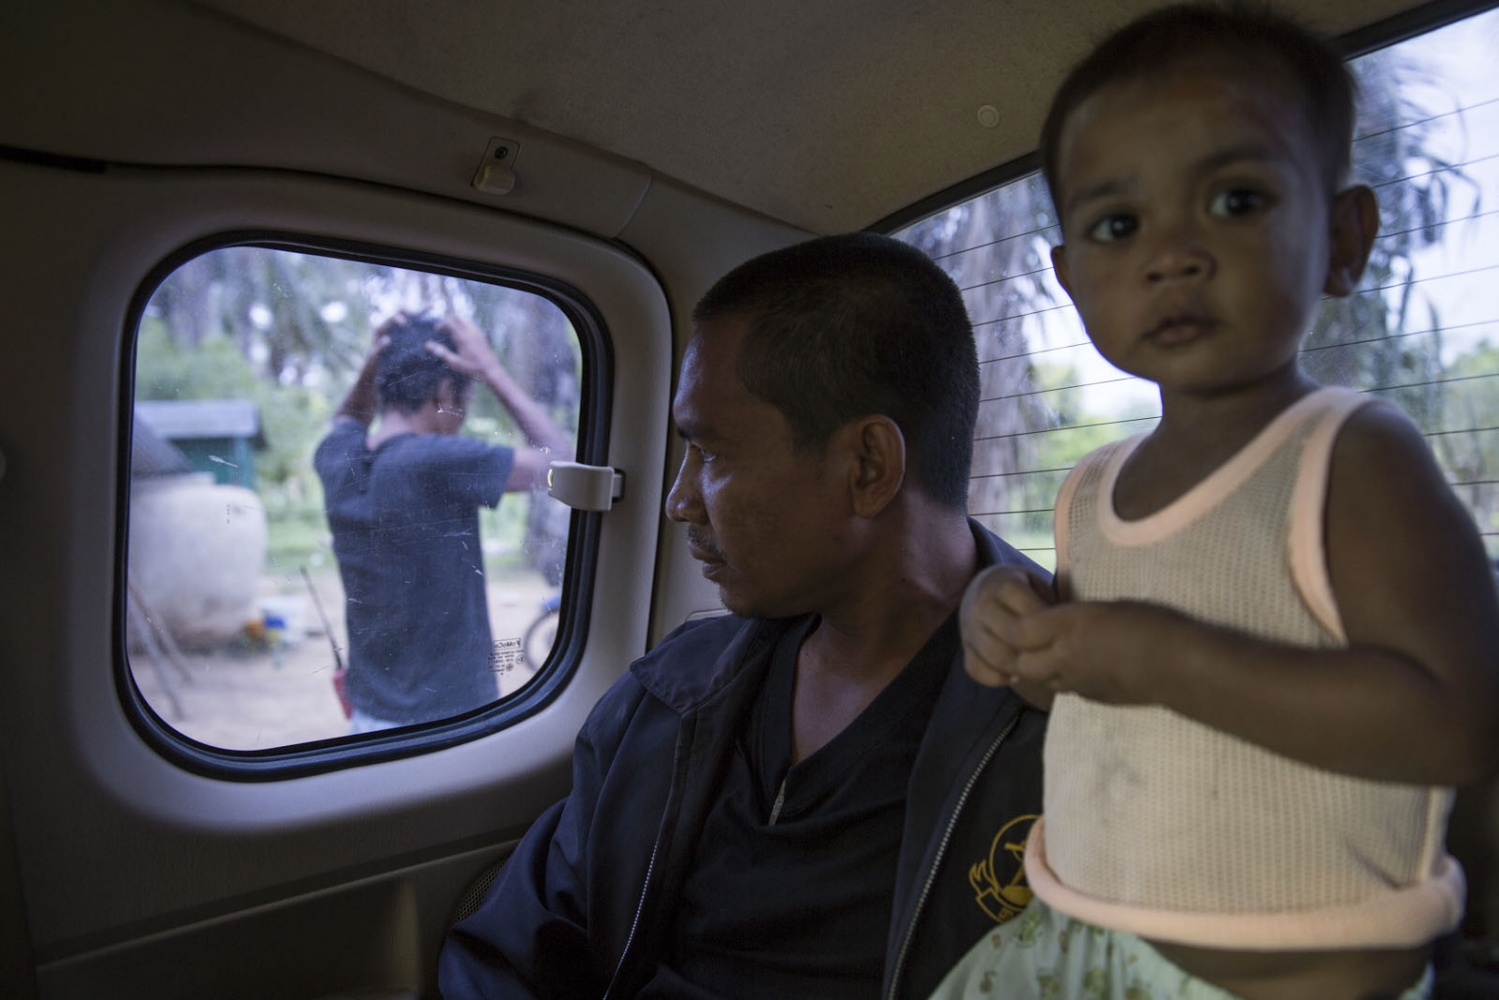 Supot Kalasong, 42, leaves the village in a pickup to travel to Bangkok to submit a document to a government office. In April 2016 Mr Kansong was shot in 6 places by an assassin who had been waiting for him to drive past as he returned to the village. He remarkably survived.